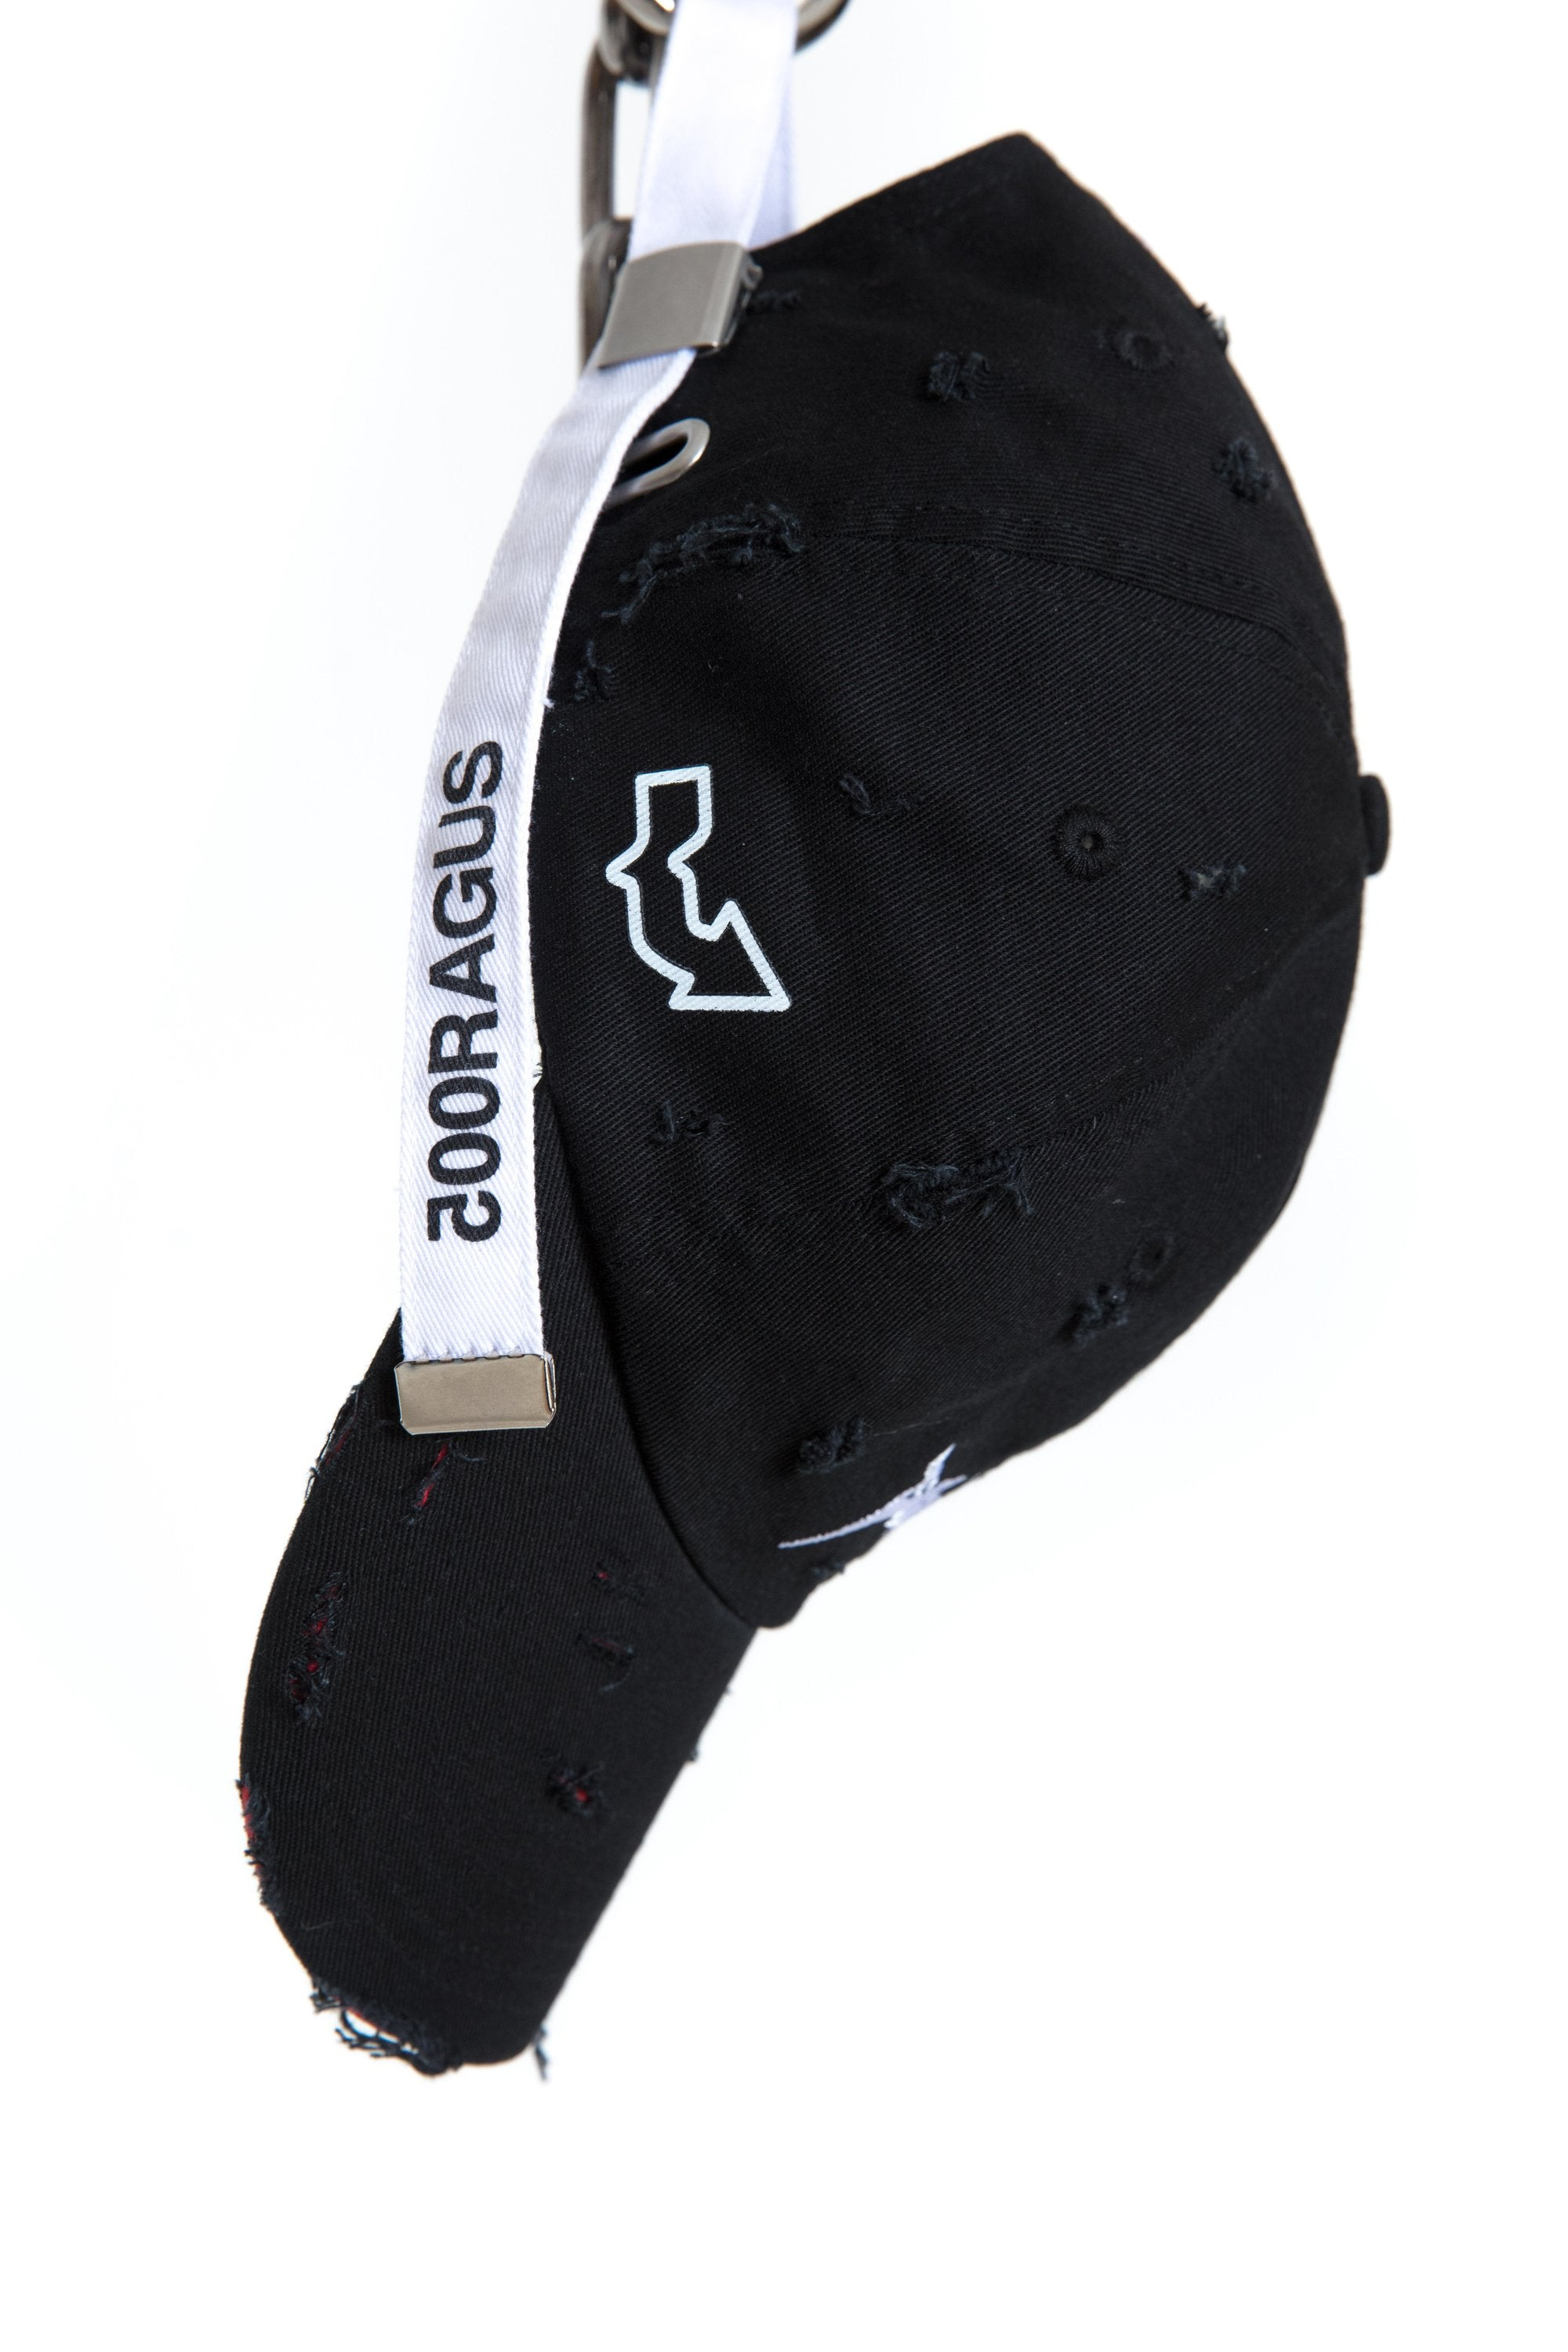 DESTROY CAP 2.0 - BLACK